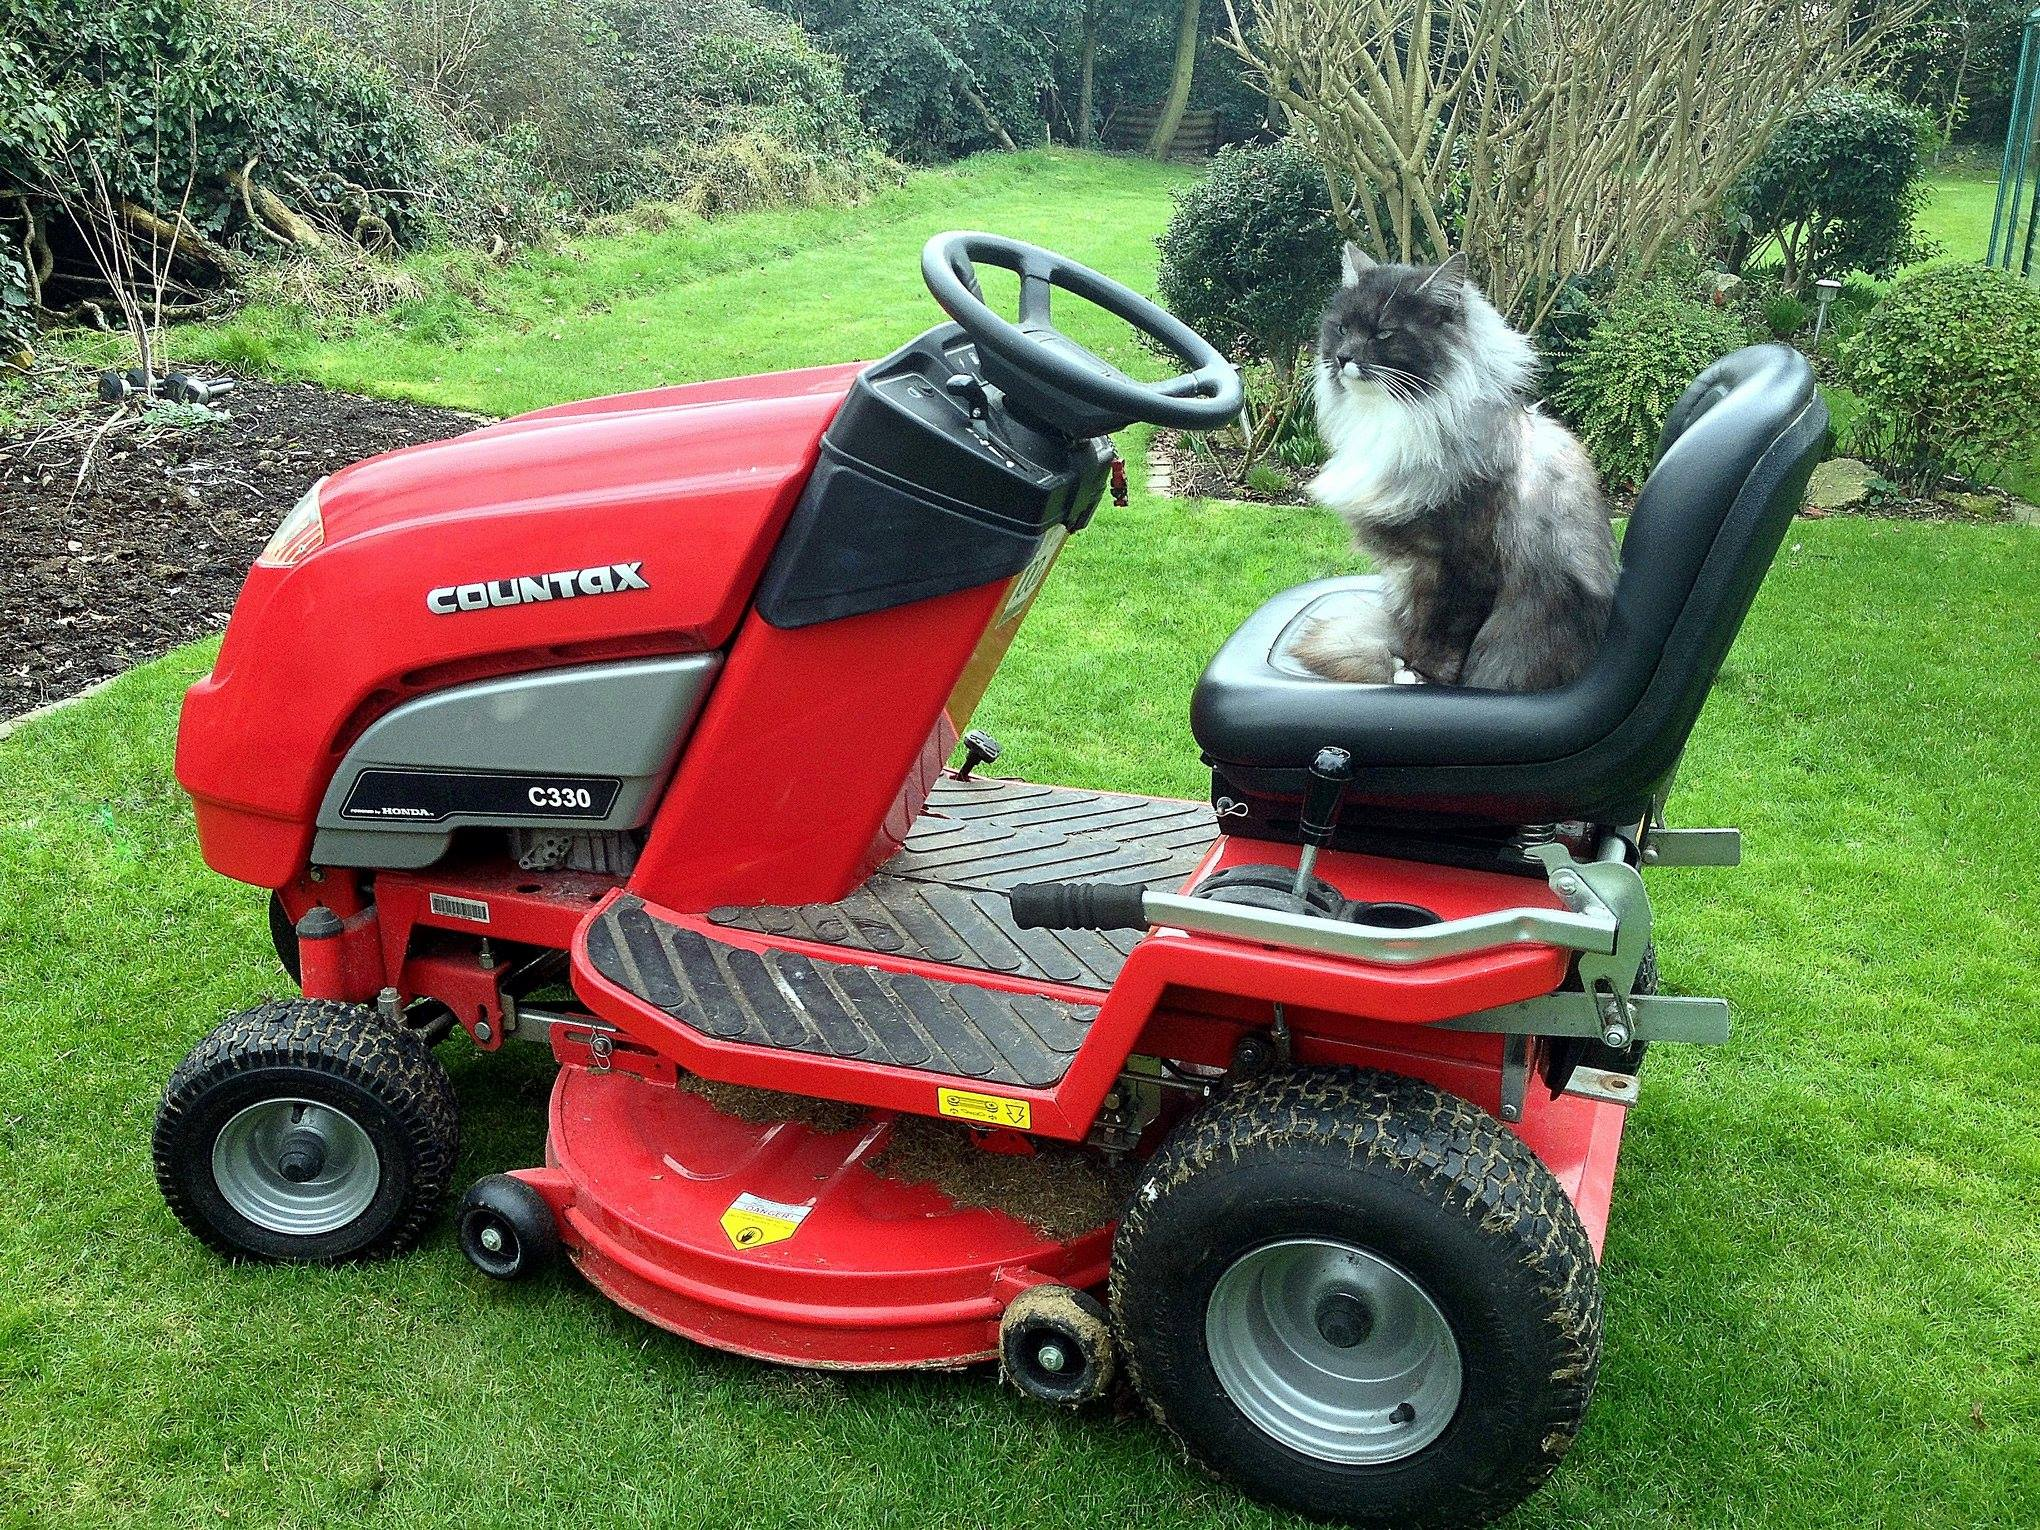 Cat on Countax garden tractor